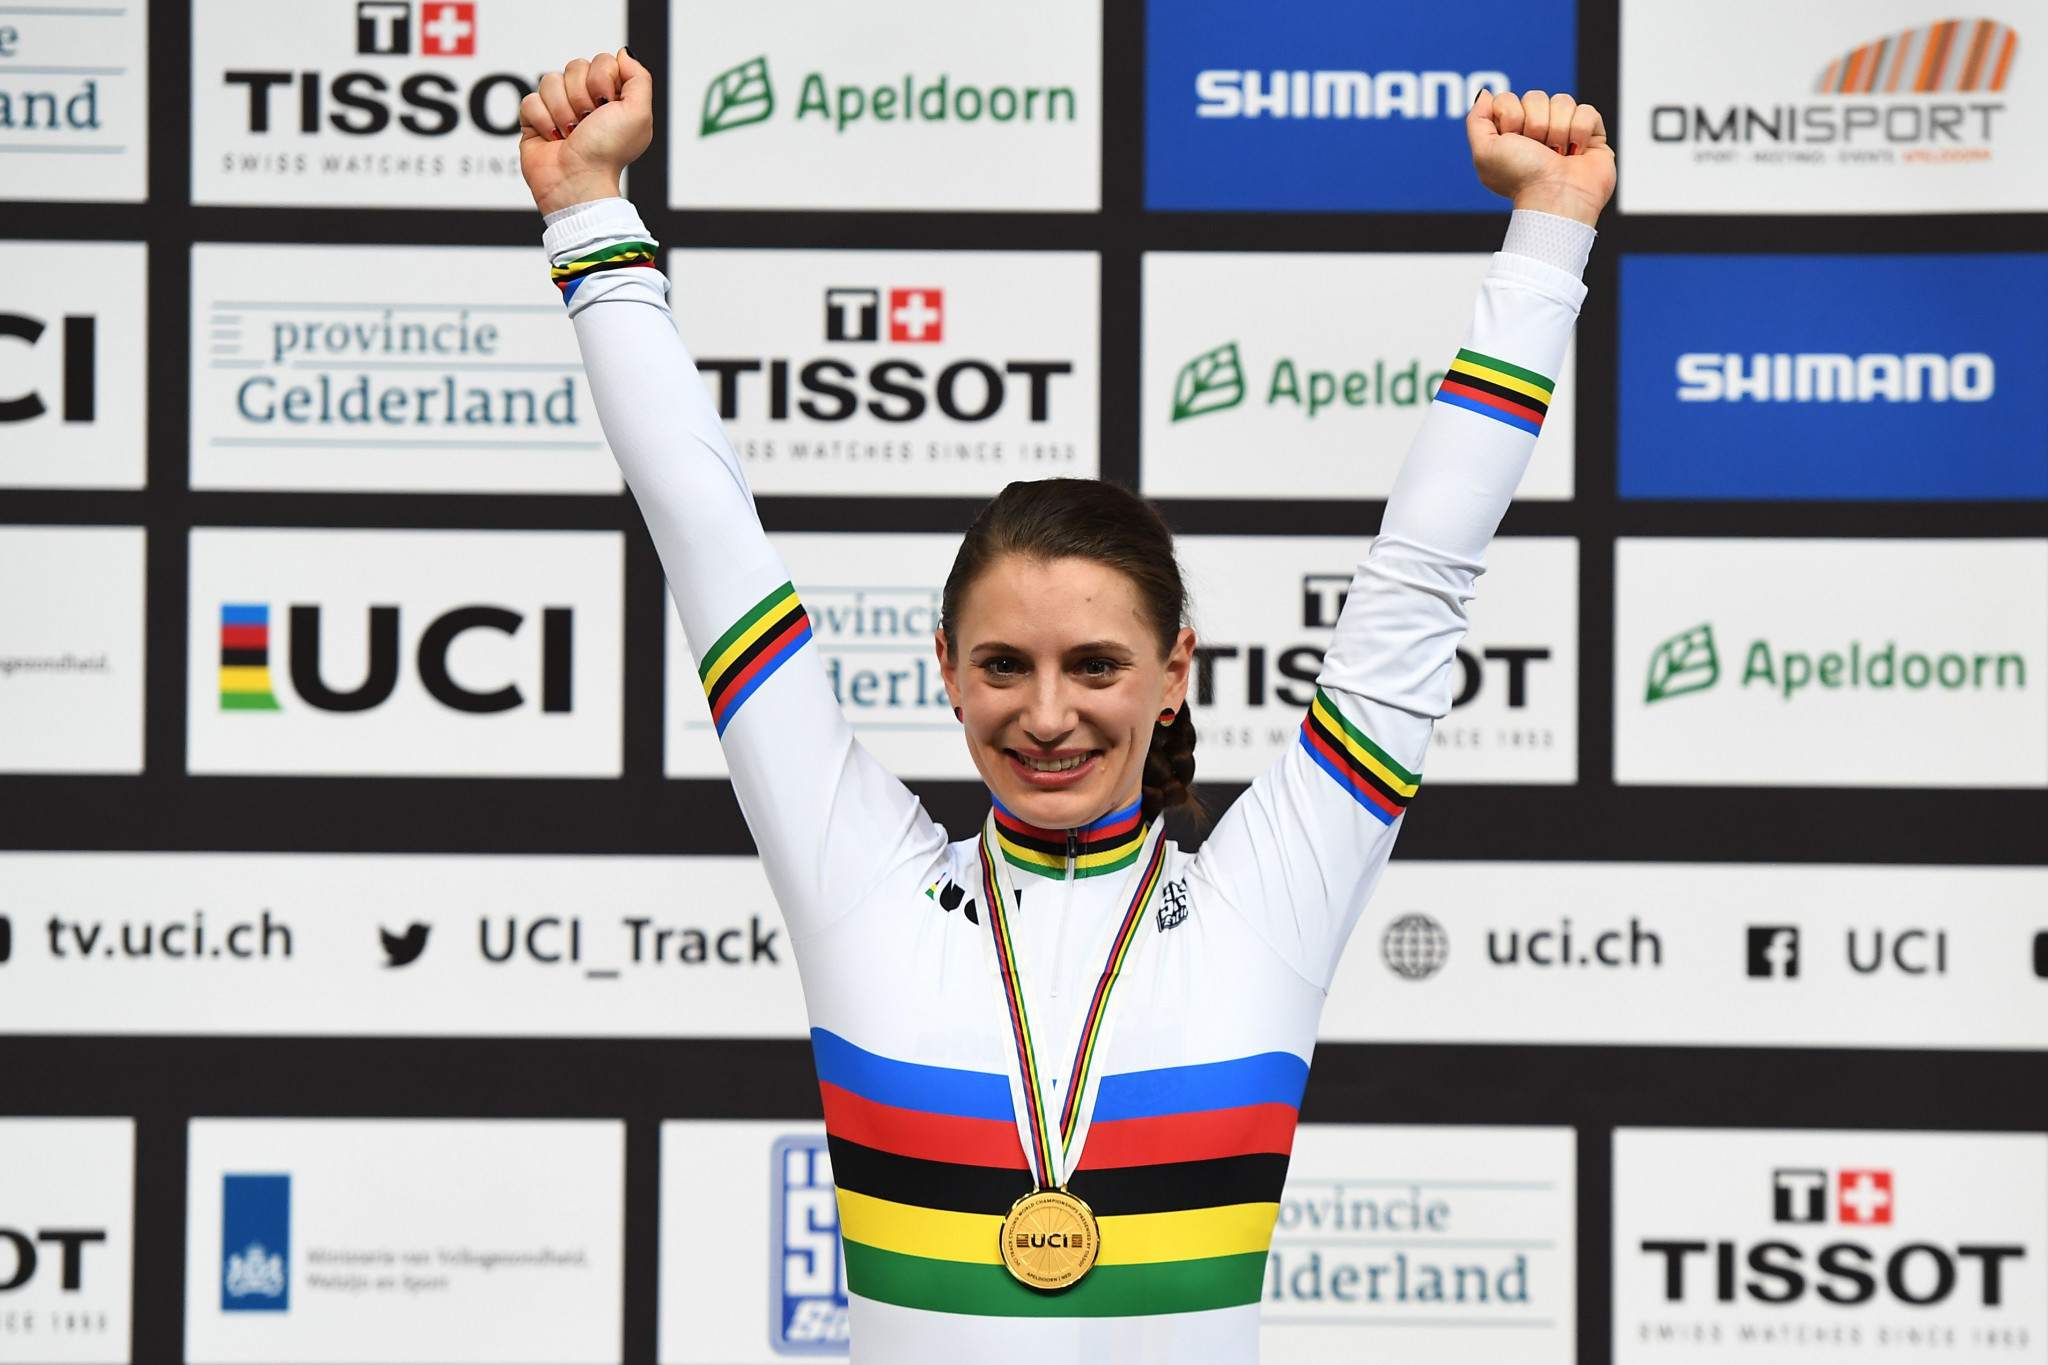 Detlef Uibel coached Miriam Welte to a gold medal in the women's 500m time trial at this year's UCI Track Cycling World Championships in Apeldoorn - one of three victories for Germany at the event ©Getty Images